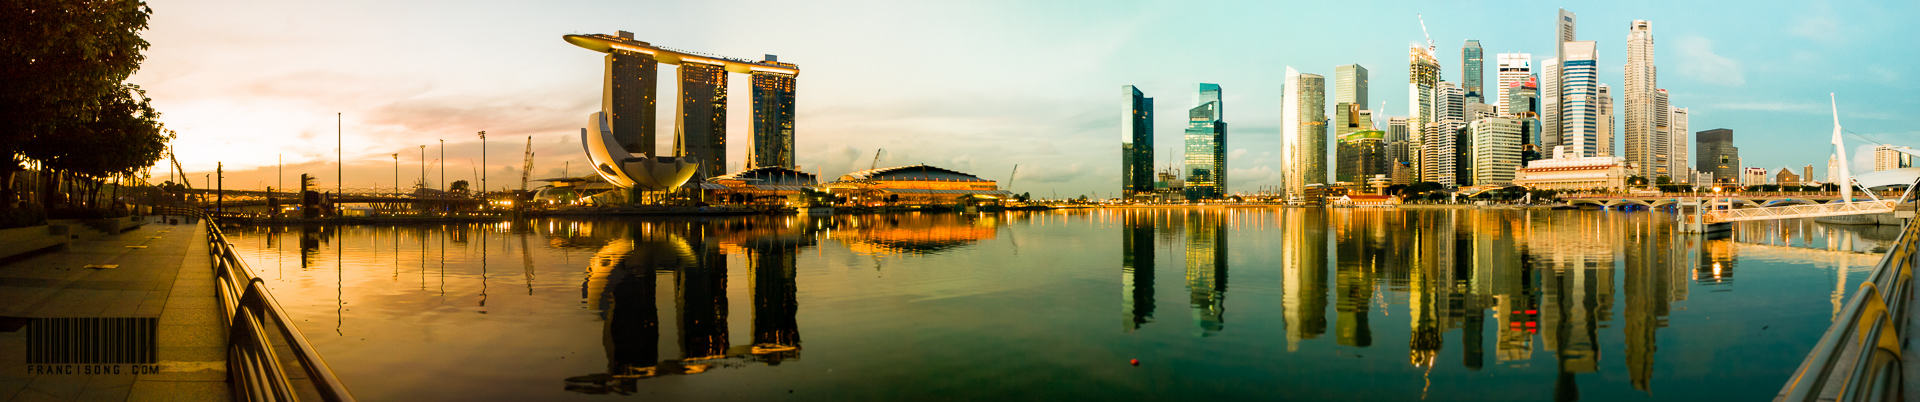 Sunrise at Marina Bay